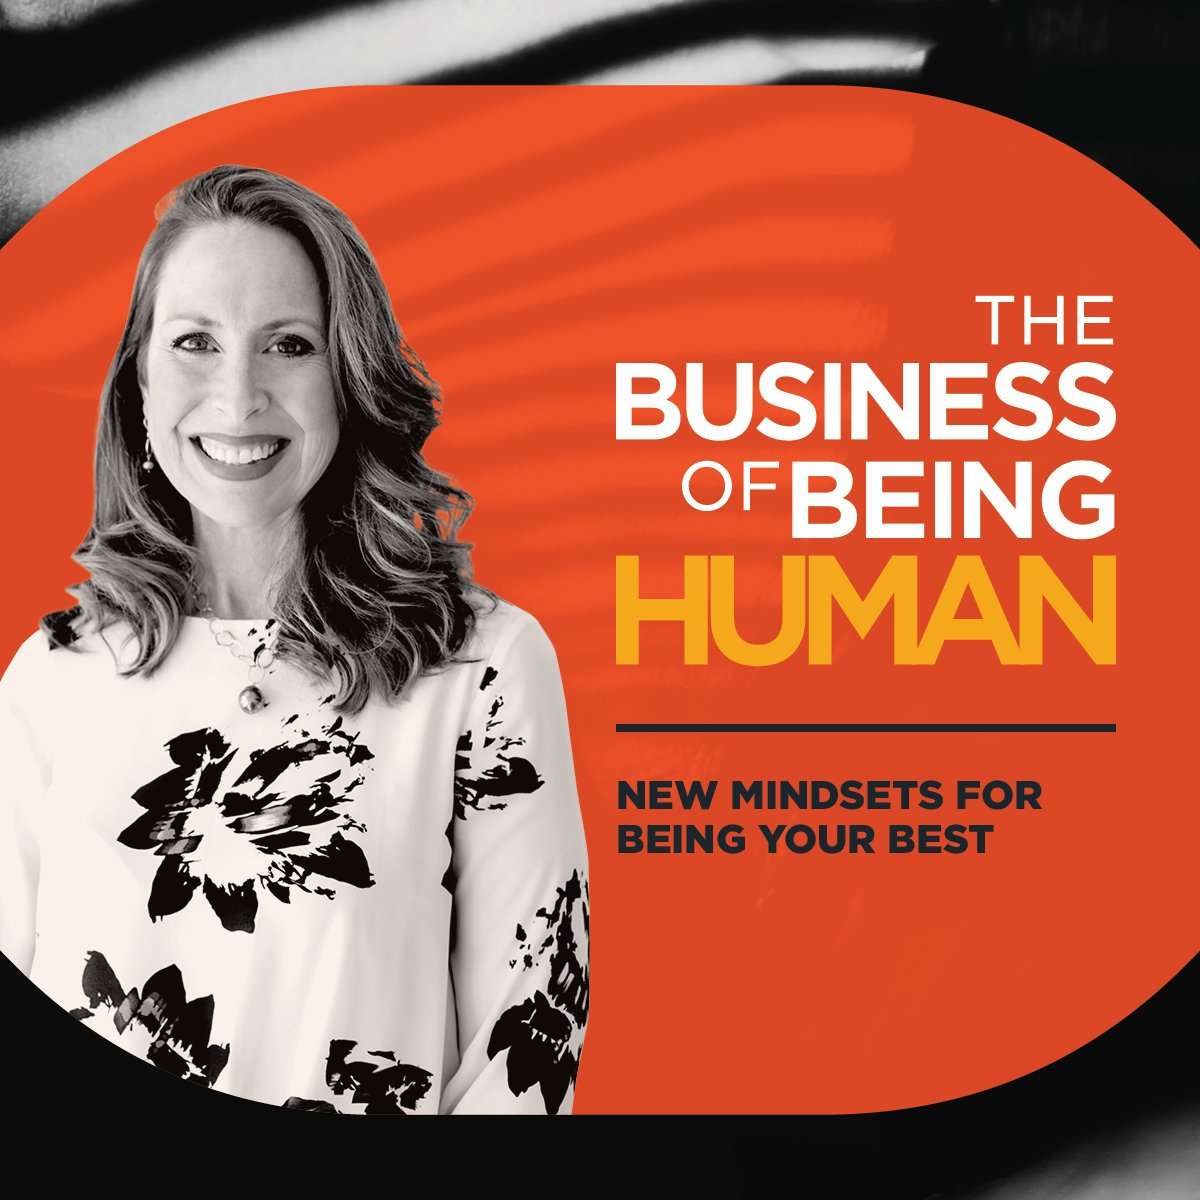 EP 7:  New Mindsets for Being your Best